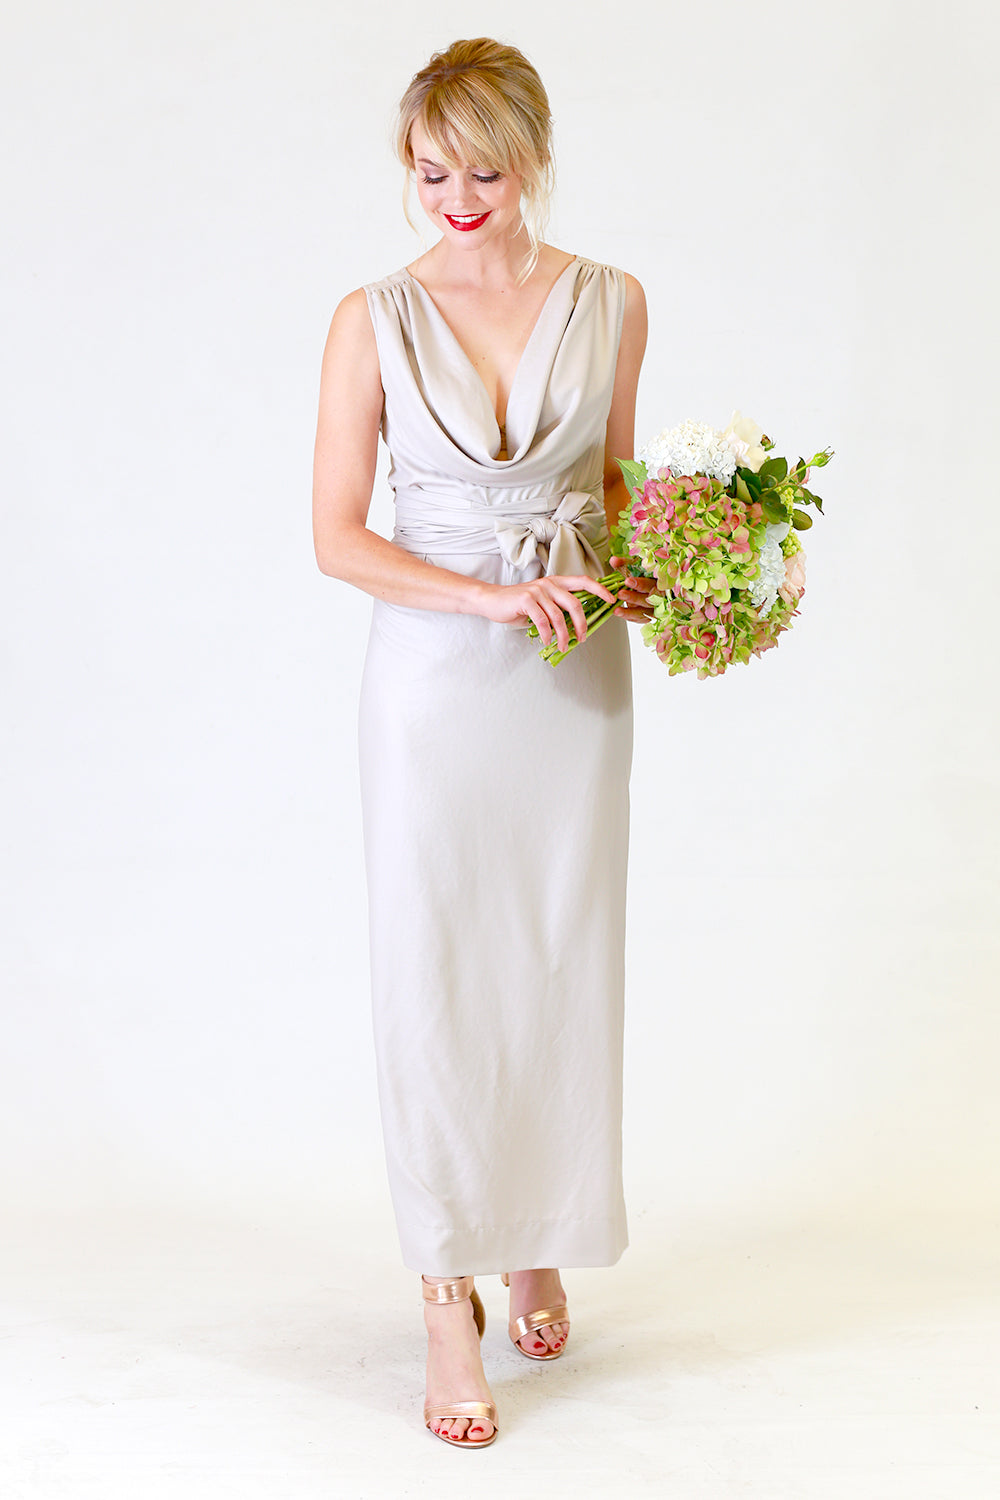 Myra Misty Dress | Green Cream Full Length Dress | Autumn Winter 19 Annah Stretton Fashion NZ / Bridesmaid dress NZ / Designer NZ / Wedding NZ / Bridal Party NZ